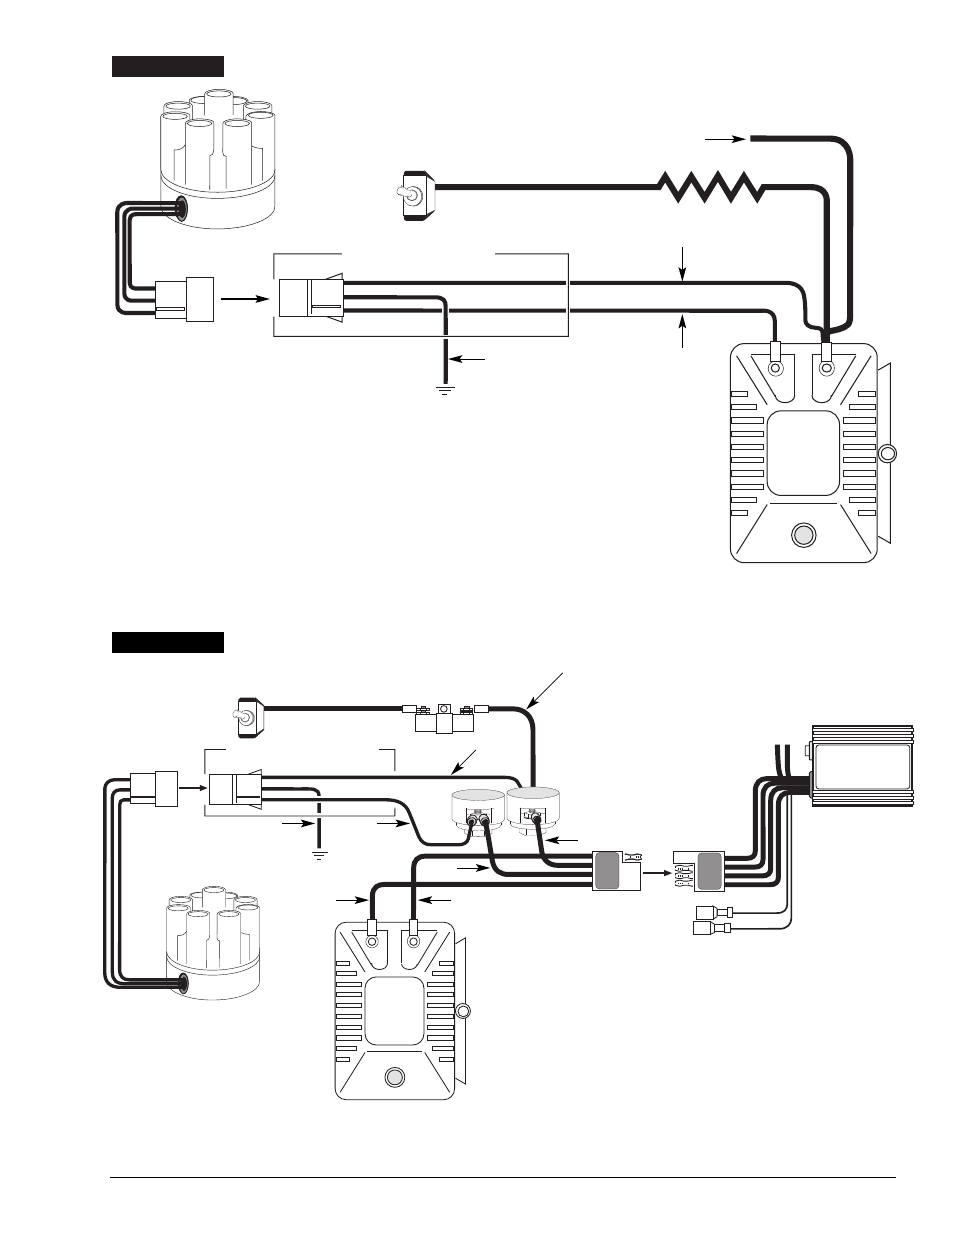 mallory ignition mallory unilite distributor page3?resize=665%2C861 promaster wiring diagram mallory ignition wiring diagram harley mallory unilite wiring diagram at gsmx.co